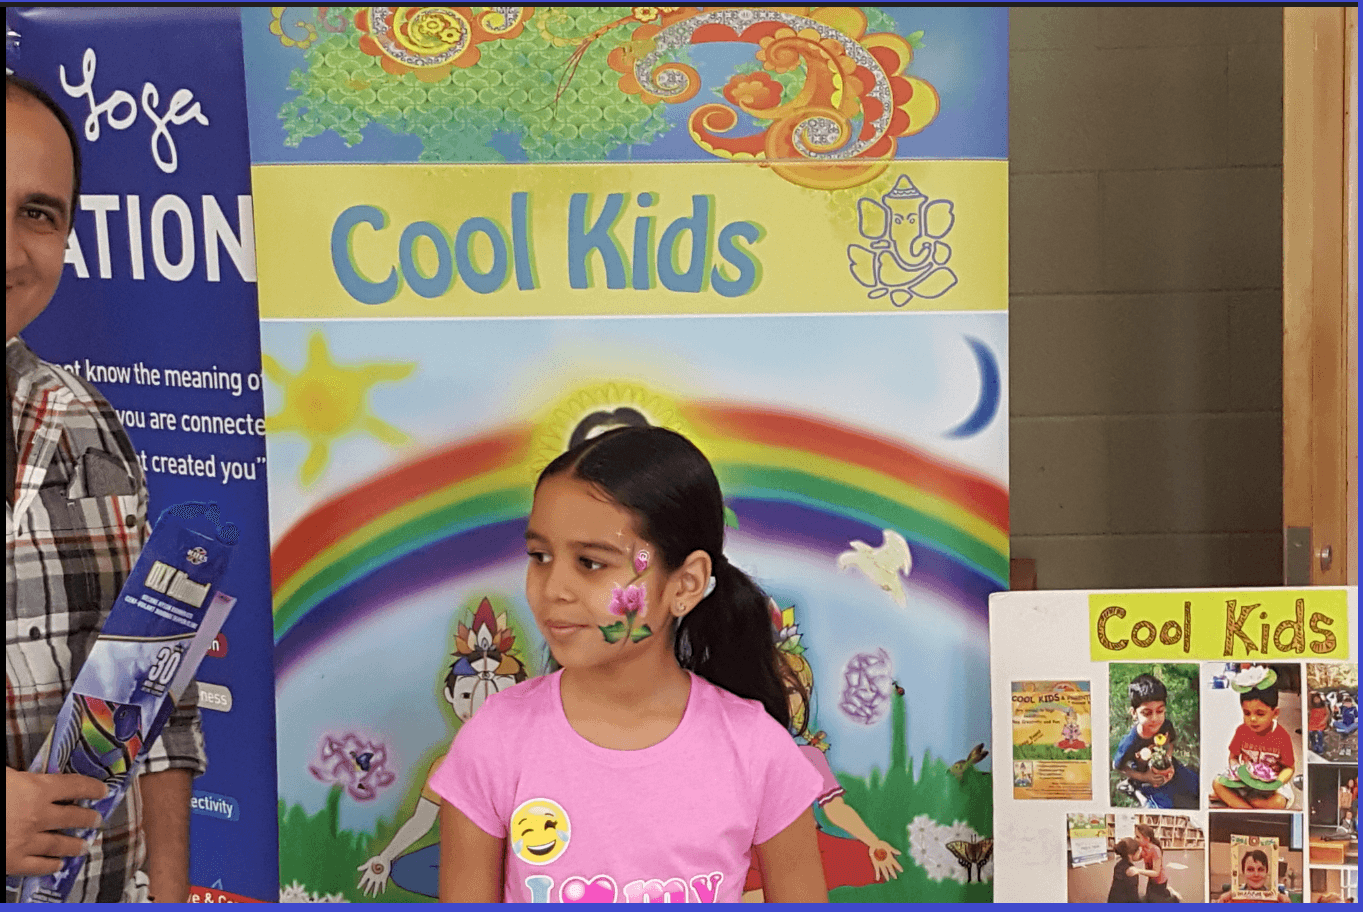 cool kids meaning